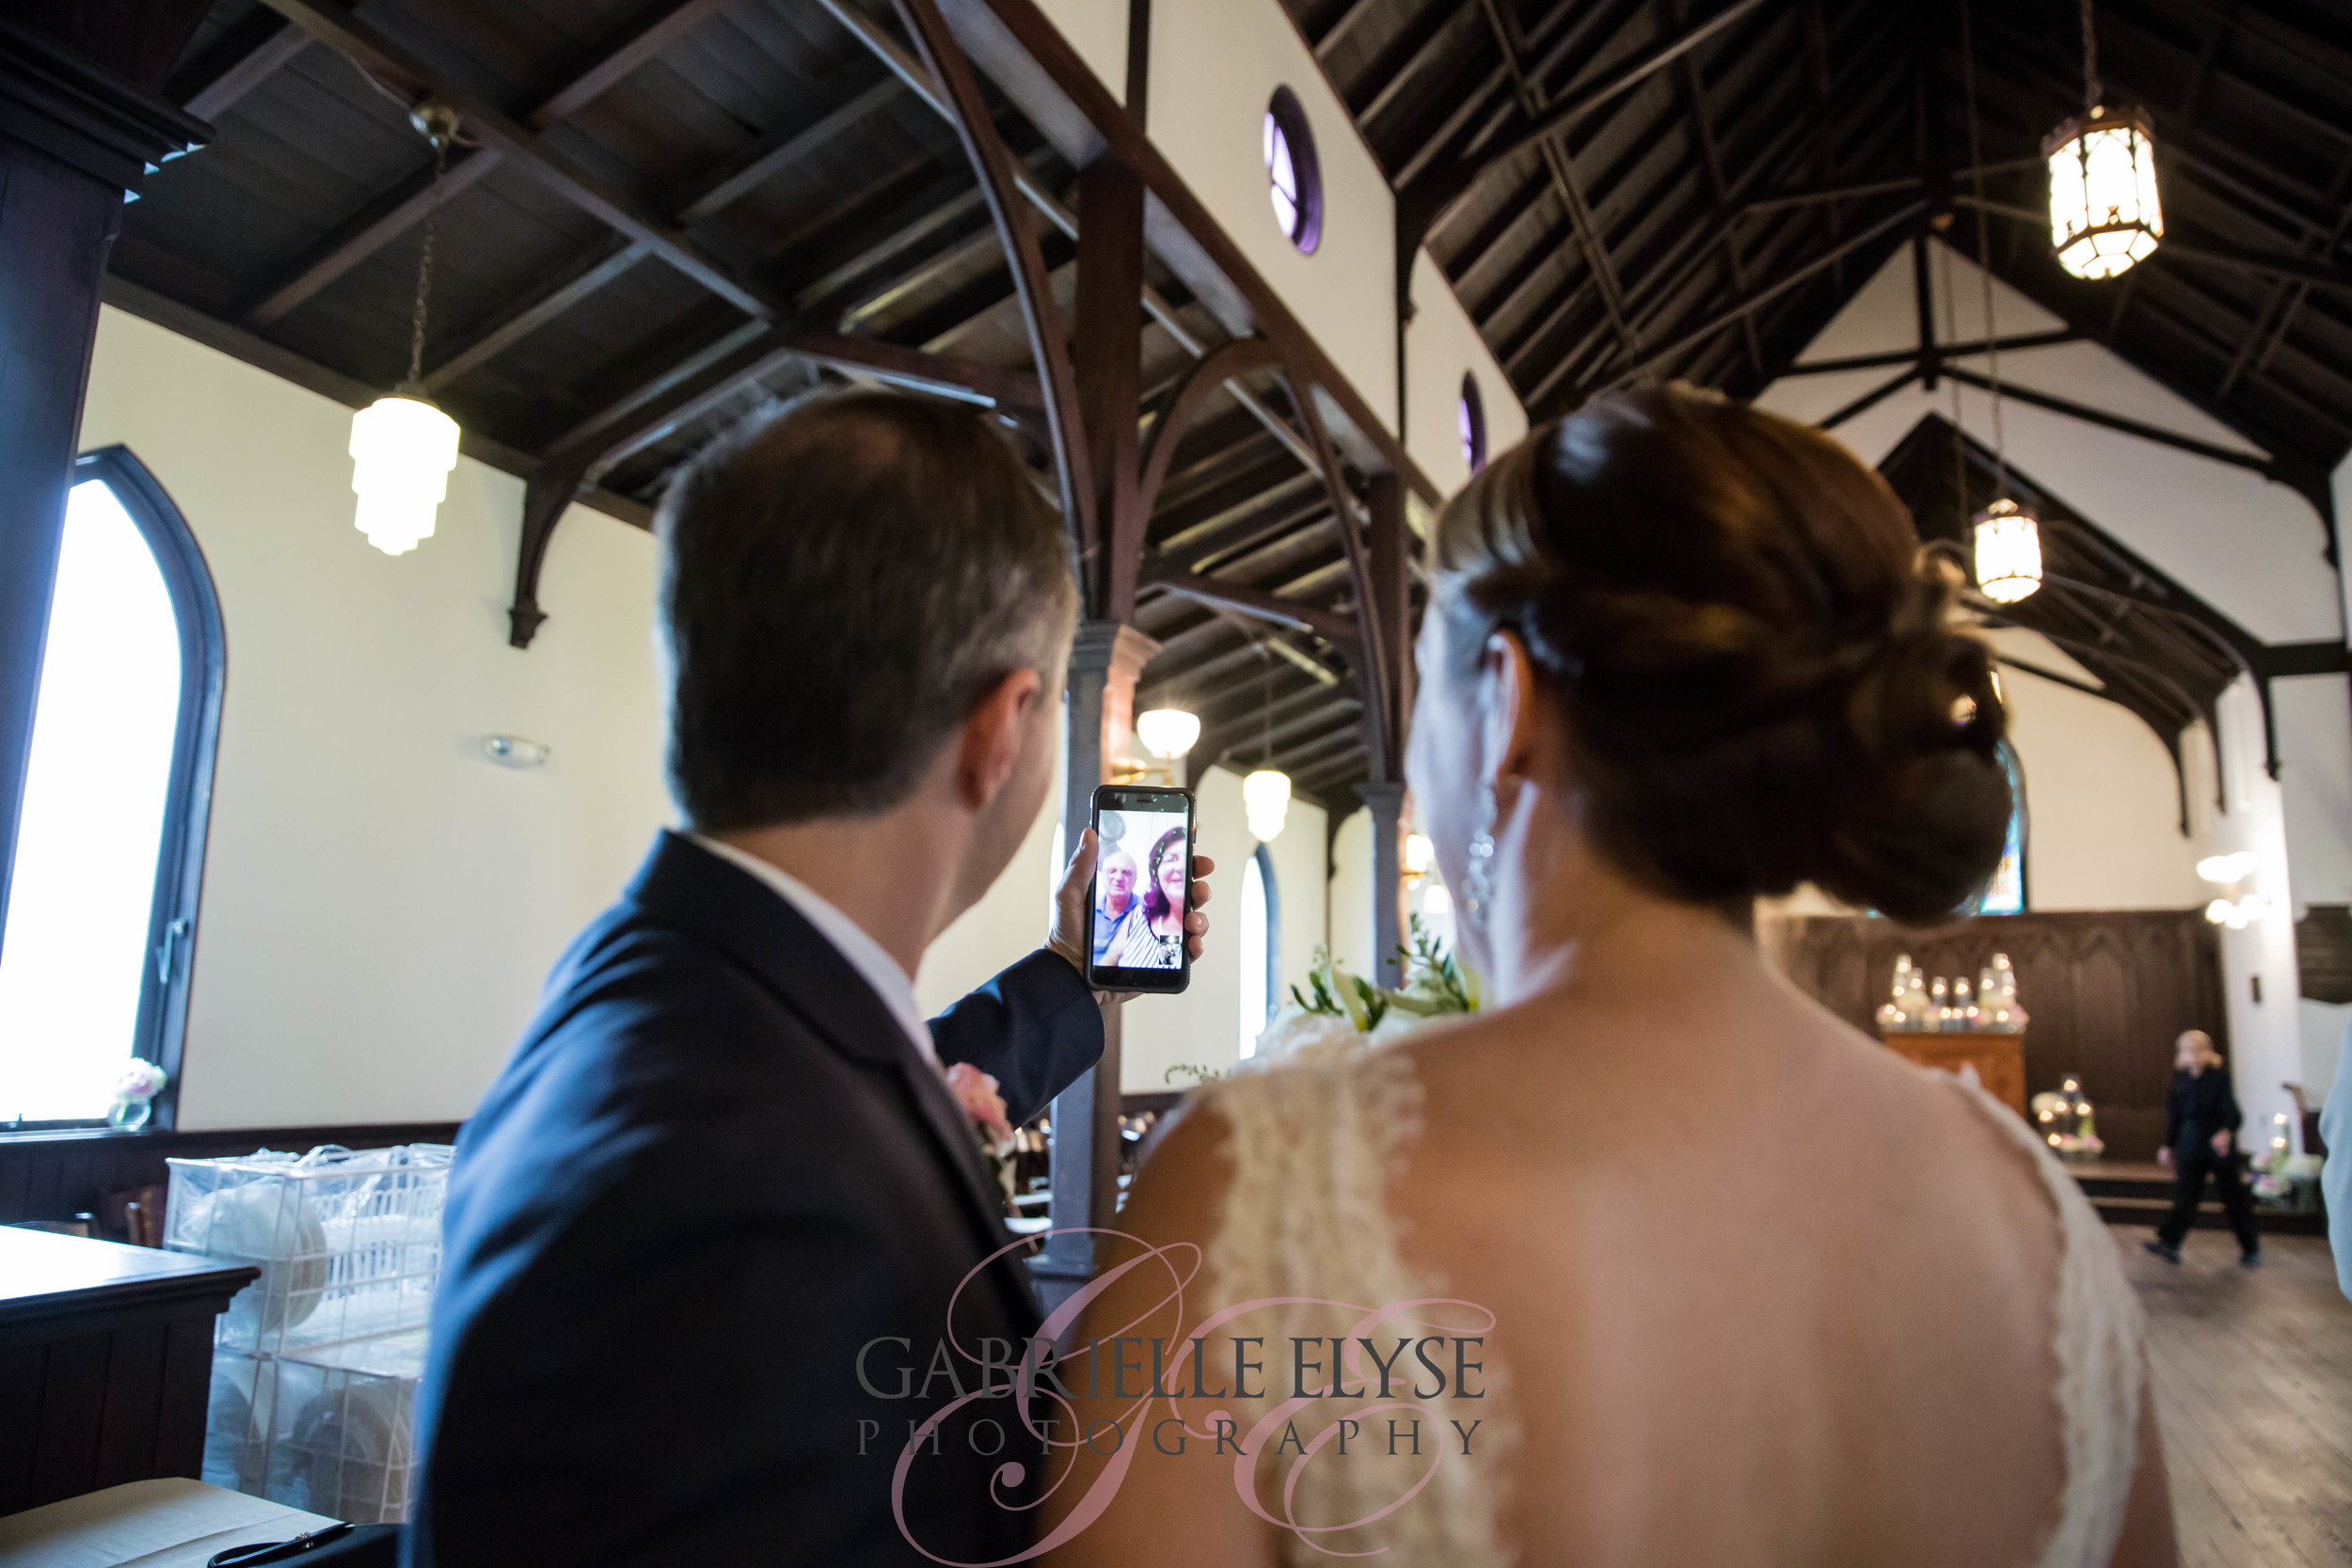 Kursad's parents were unable to make it to the wedding, but they were on Face Time for the ceremony and a chat after. <3